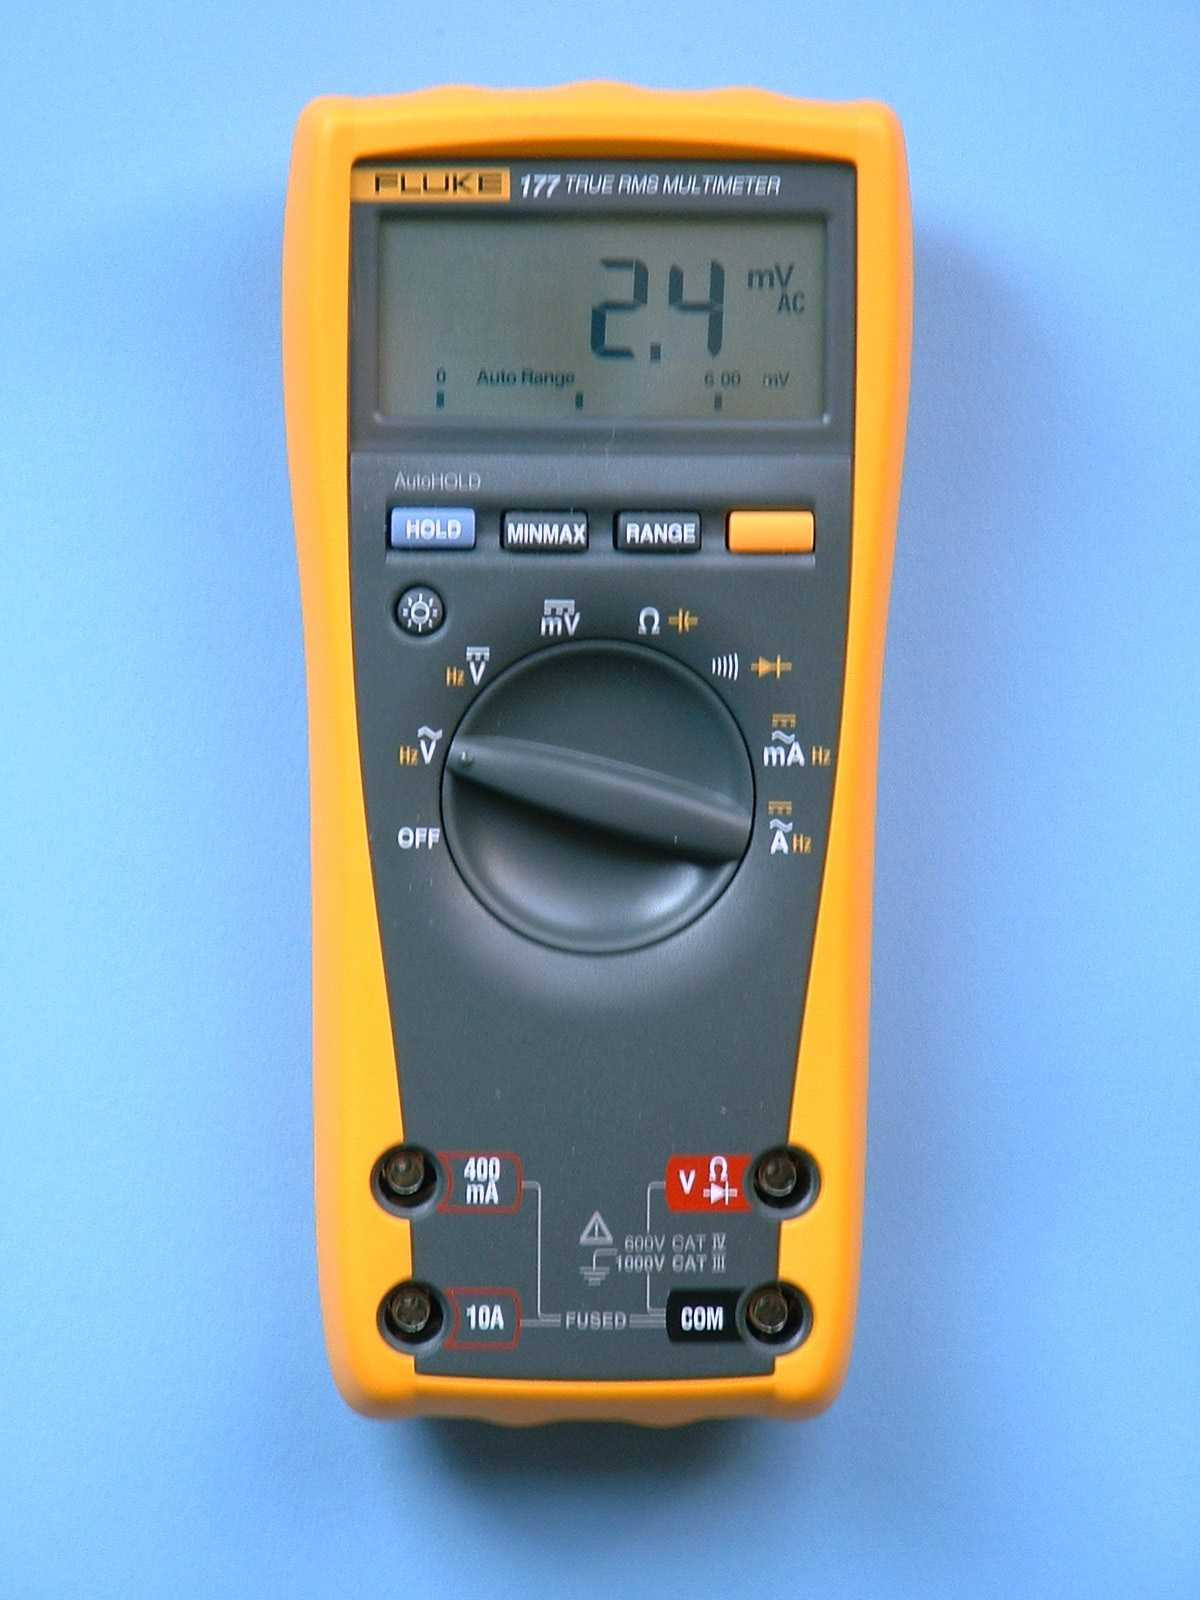 Fluke Digital Voltmeter : Cpsc fluke corp announce recall of digital multimeters